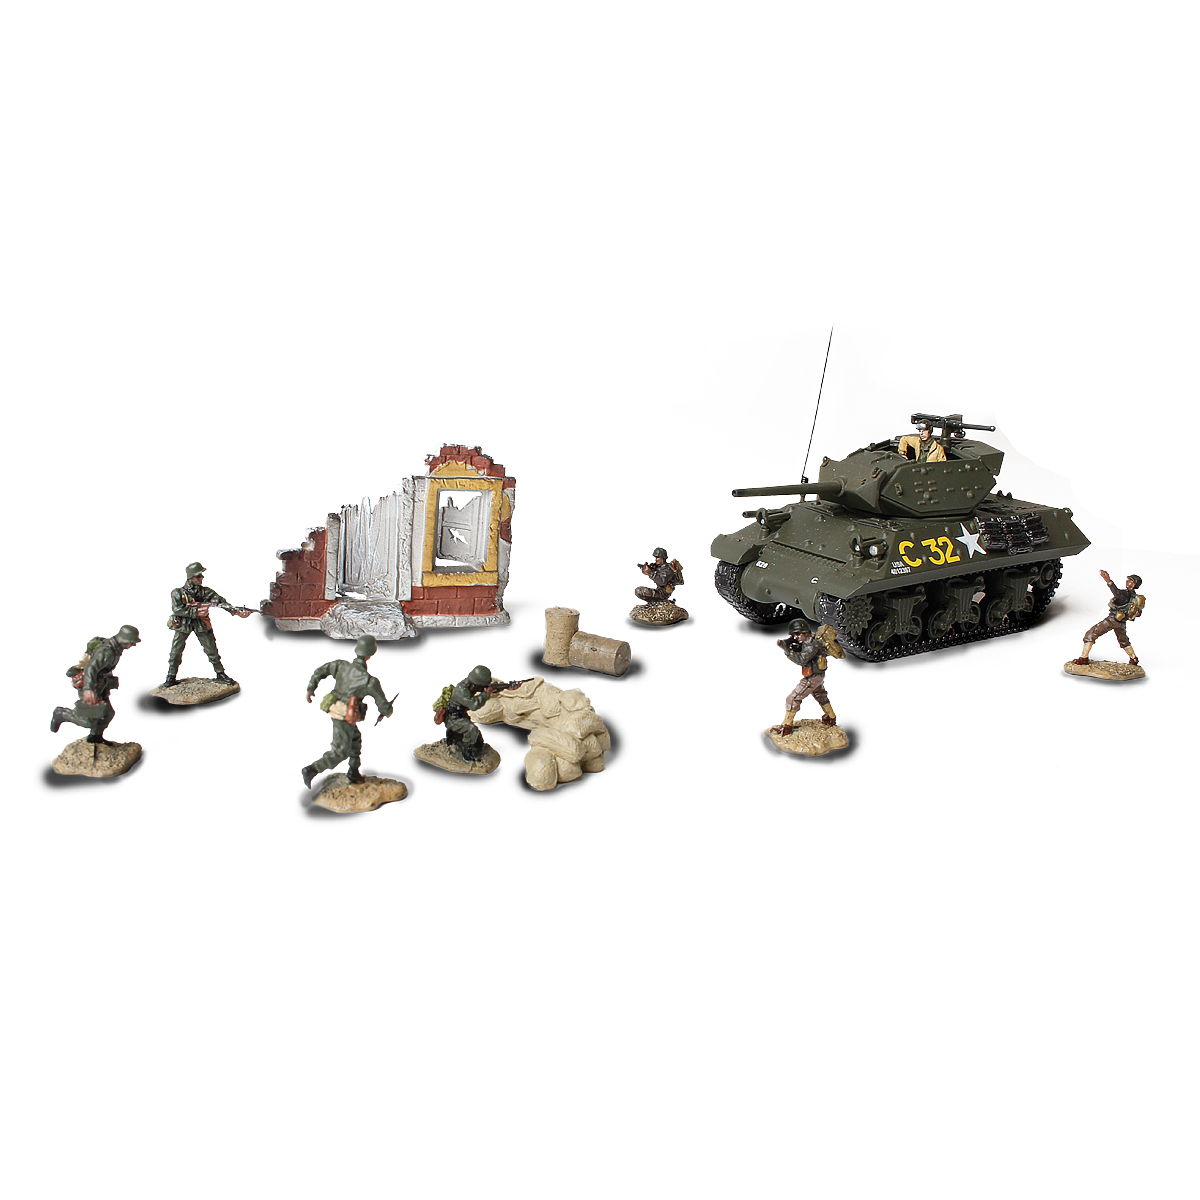 85078 US M10 TANK DESTROYER & SOLDIER SET 172 SCALE